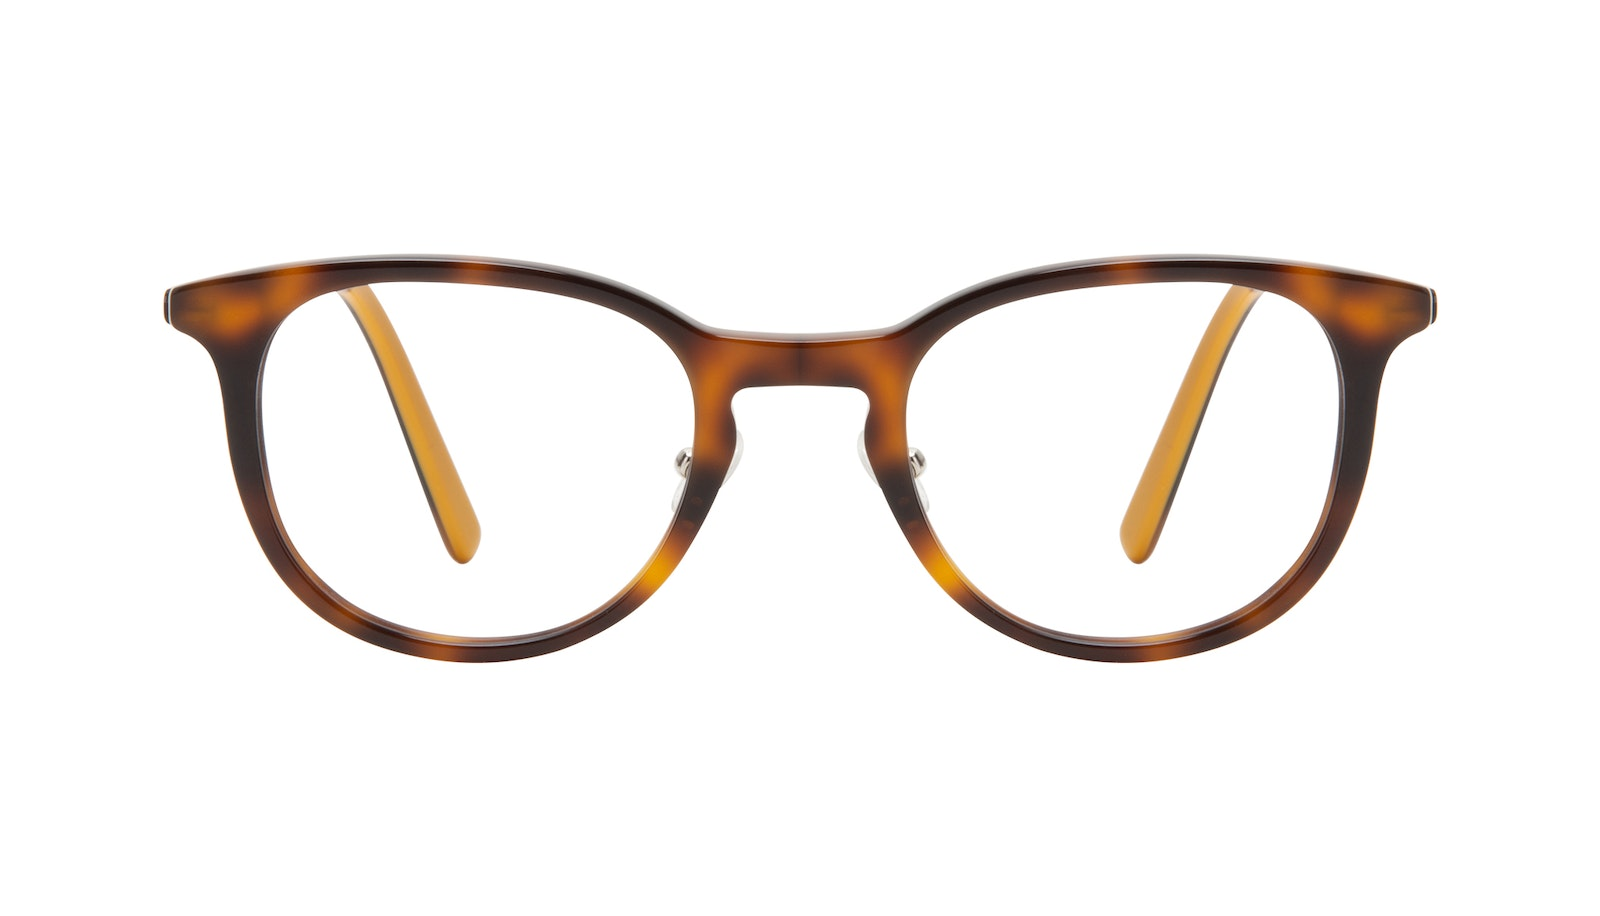 Affordable Fashion Glasses Round Eyeglasses Men Coast Tortoise